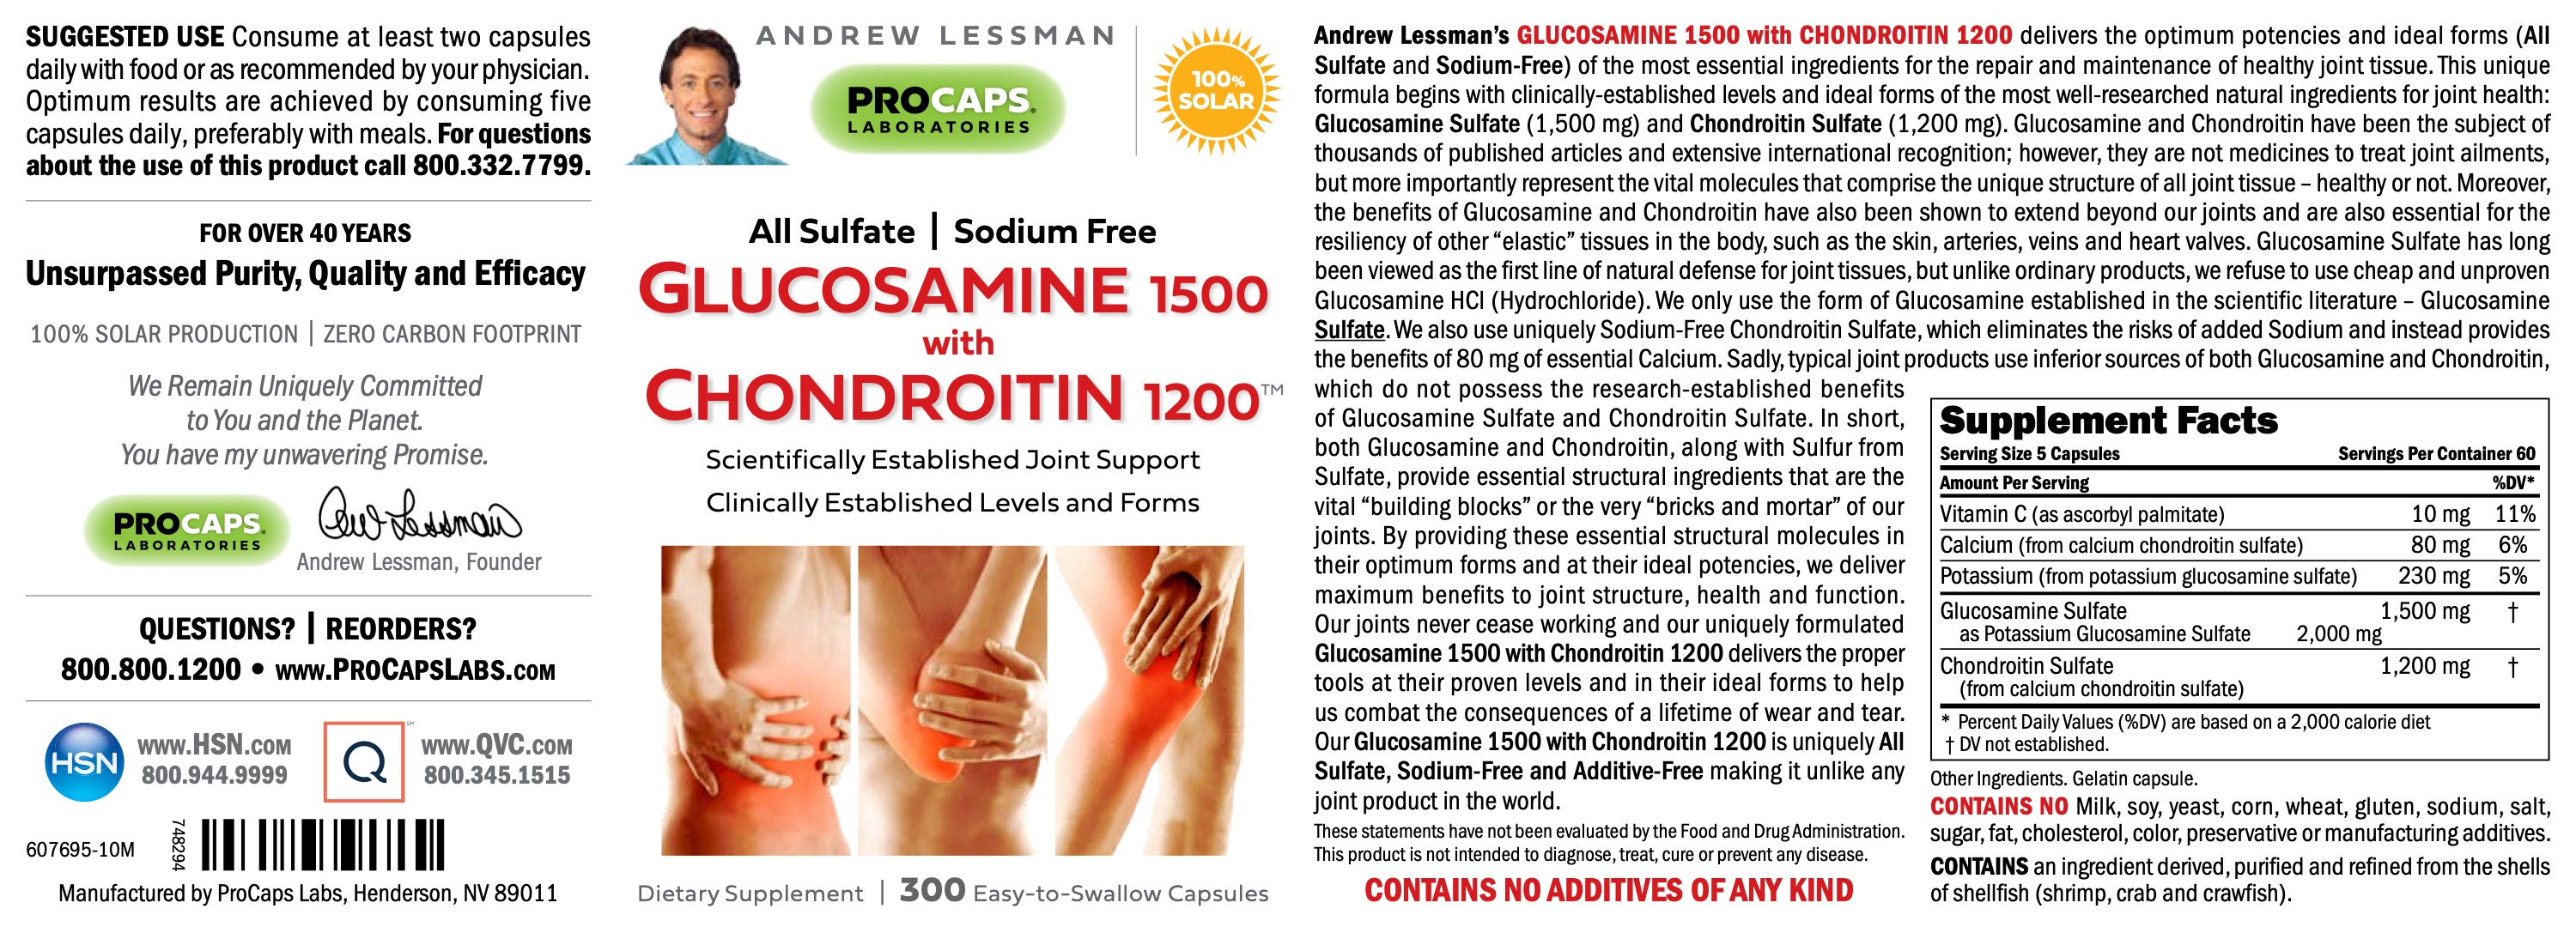 Glucosamine-1500-with-Chondroitin-1200-Capsules-Joint-Support